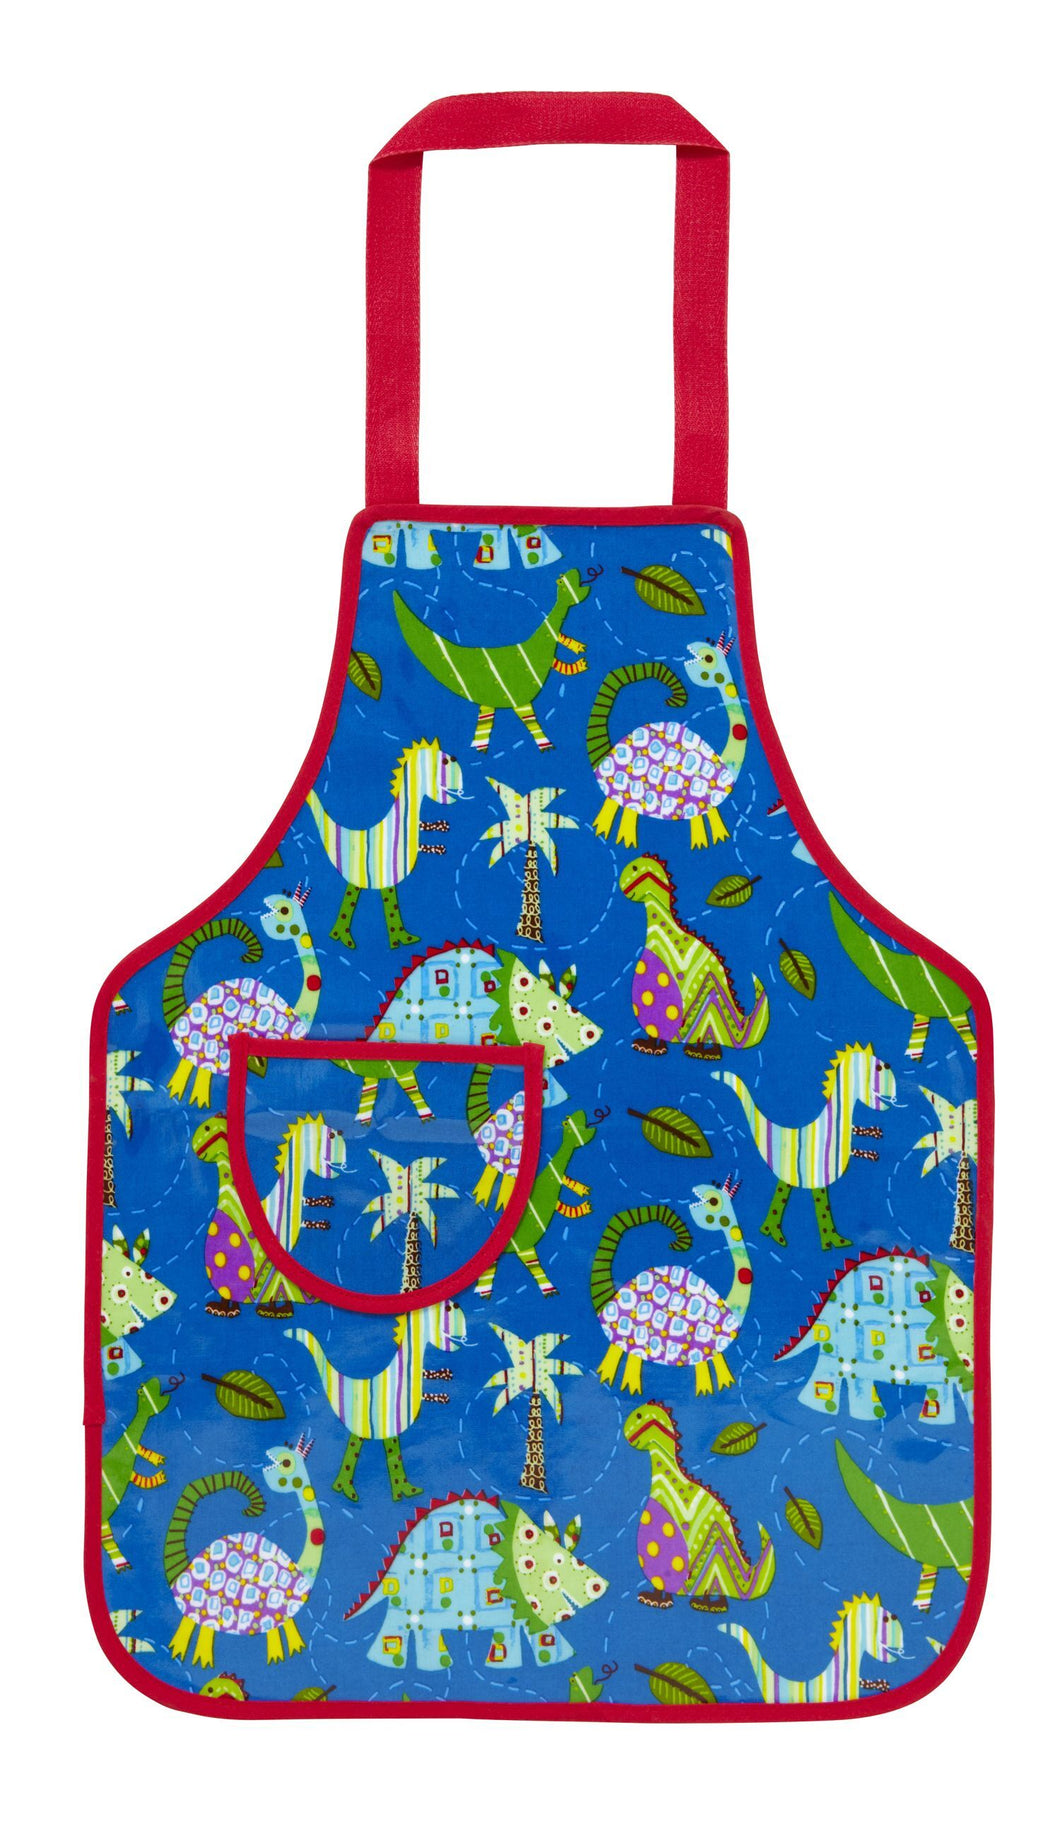 Dinosaur PVC Apron by Ulster Weavers - Mess Chef